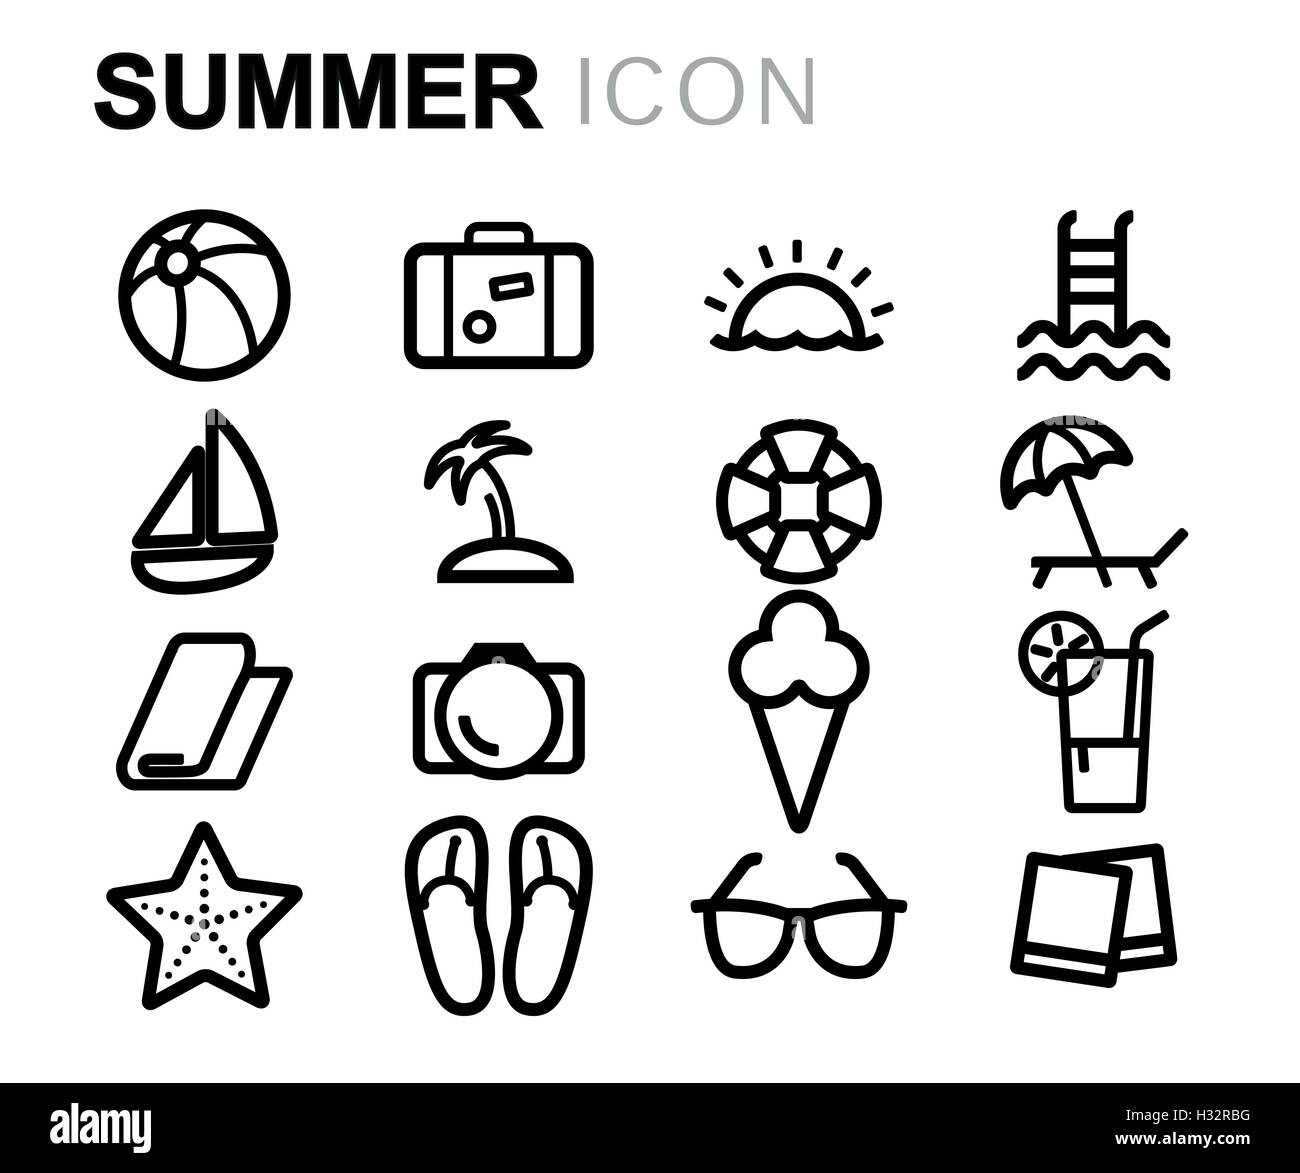 vector black line summer icons set on white background stock vector image art alamy https www alamy com stock photo vector black line summer icons set on white background 122378804 html